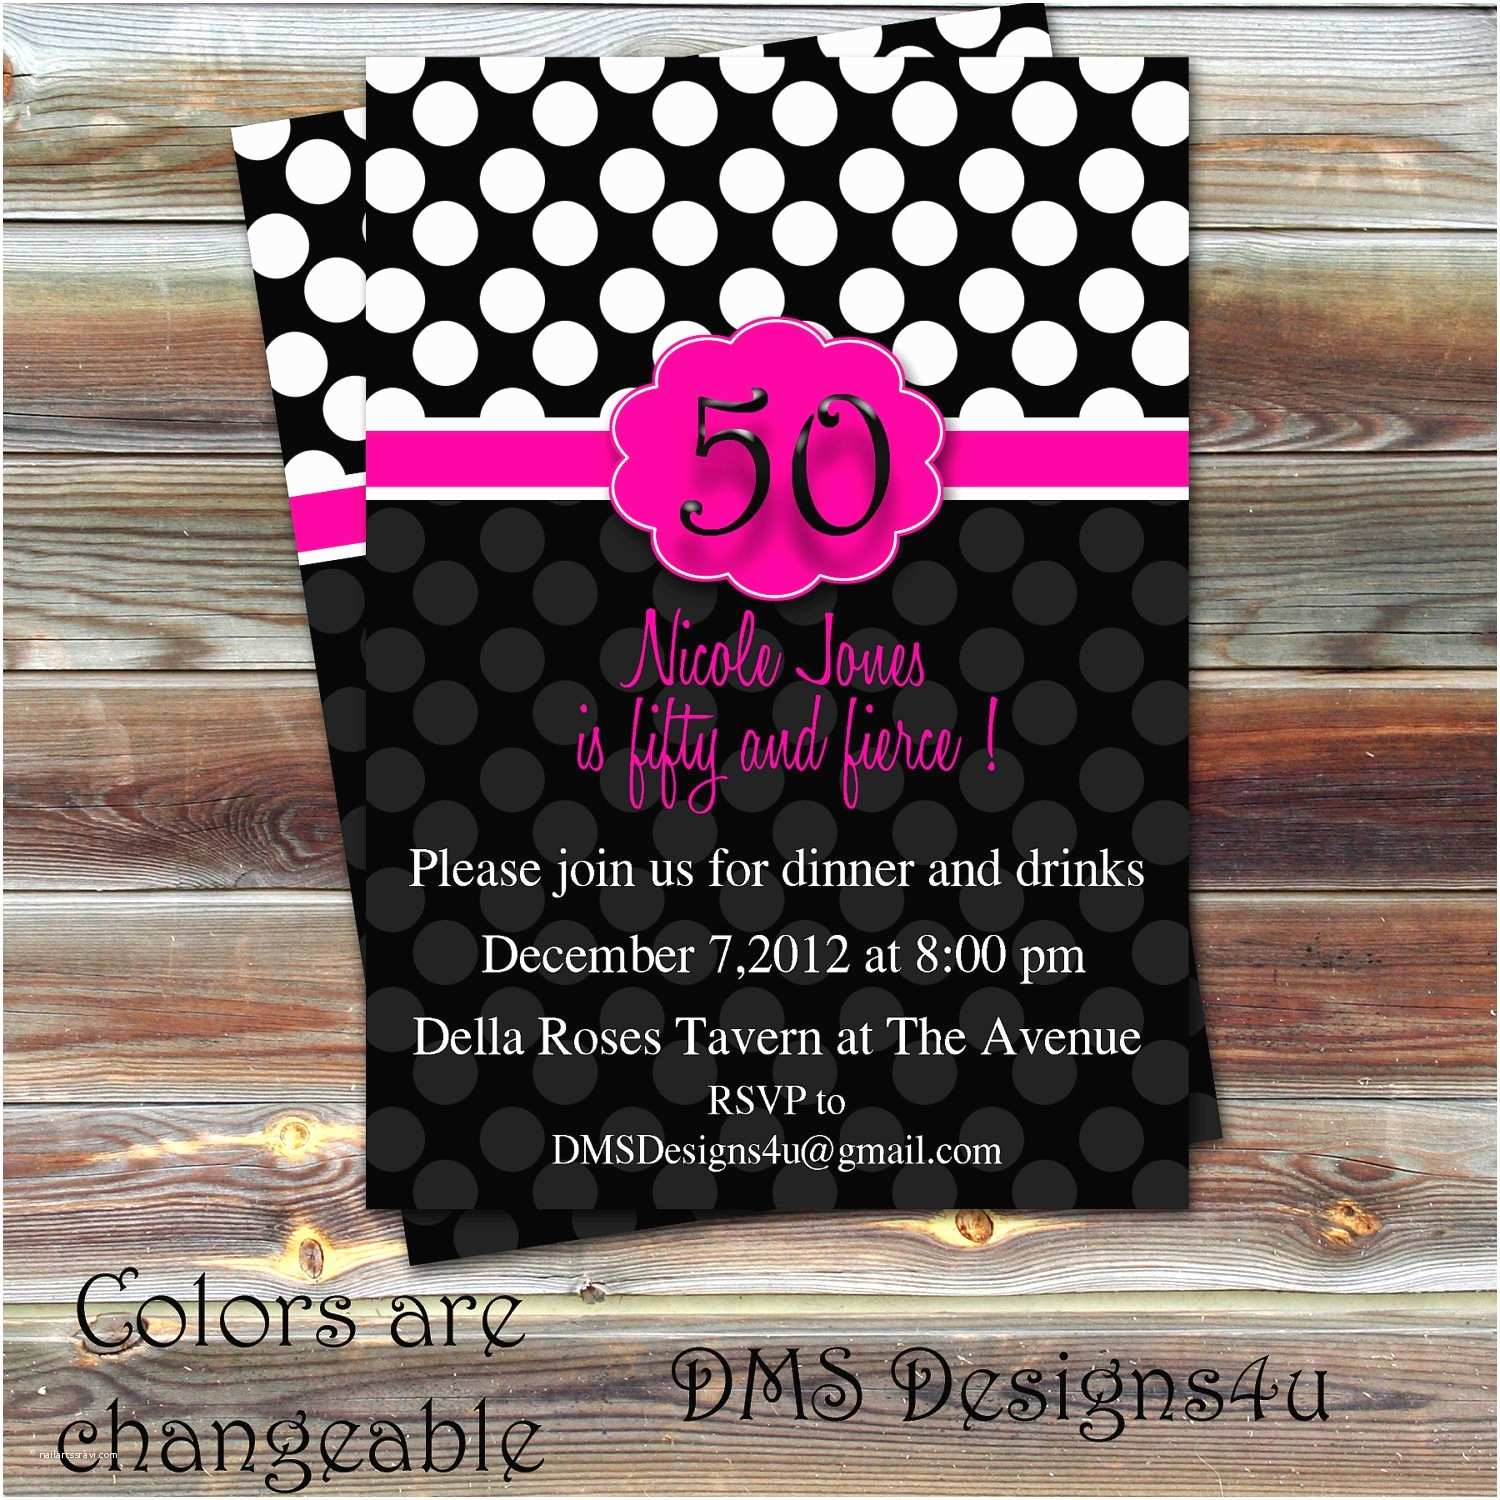 Walgreens Birthday Invitations Walgreens Birthday Invitations Baby Shower